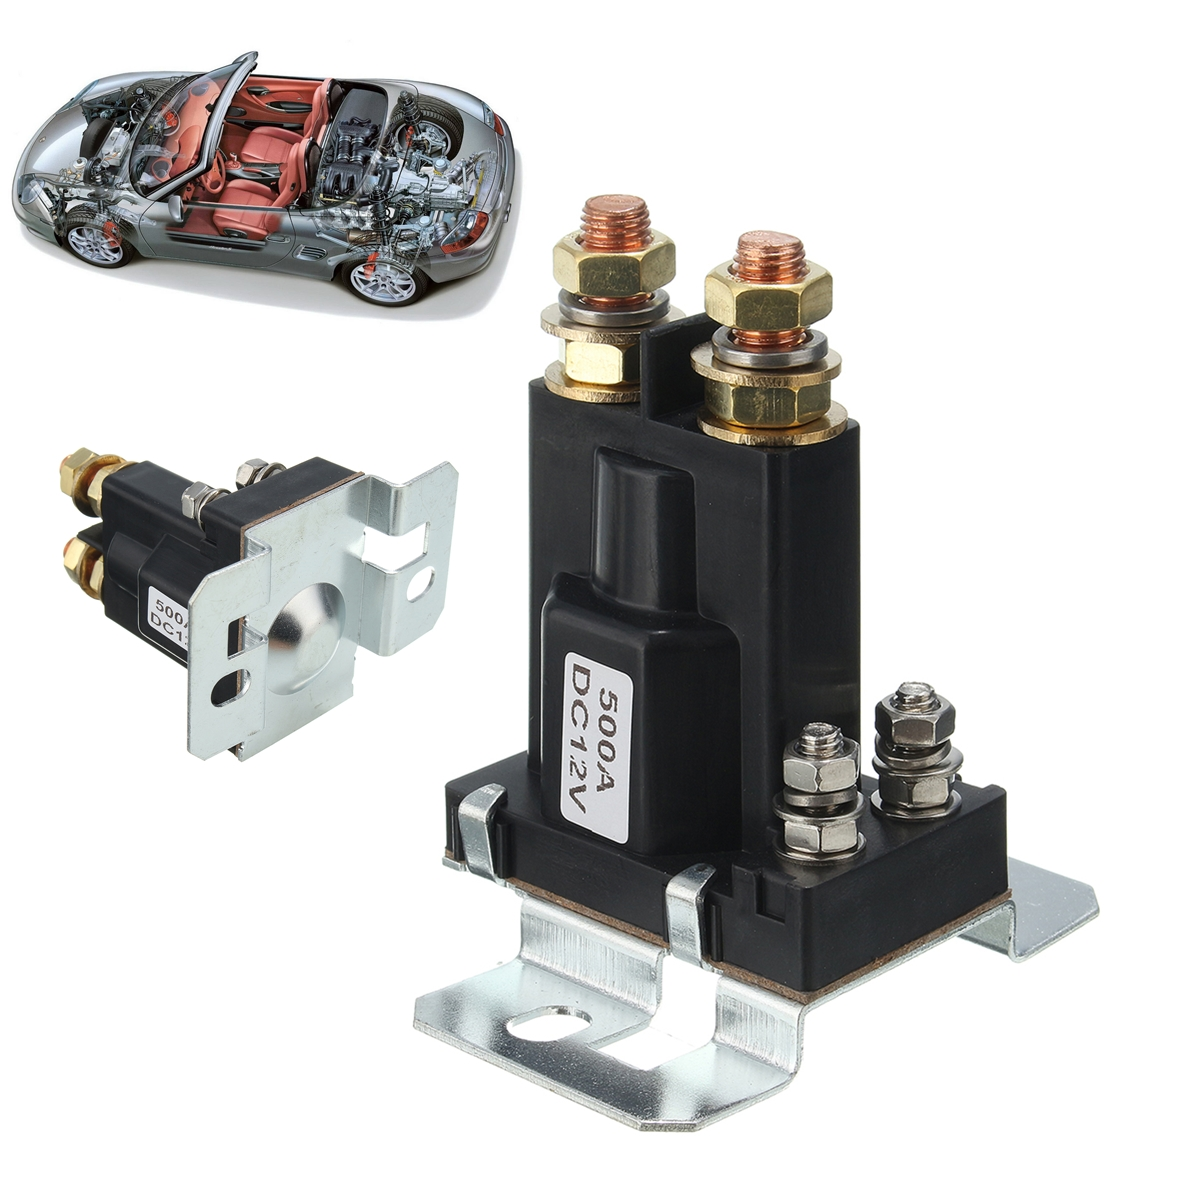 4 Pin Over 500A AMP DC 12V Relay On/Off Car Auto Power Switch Contactor